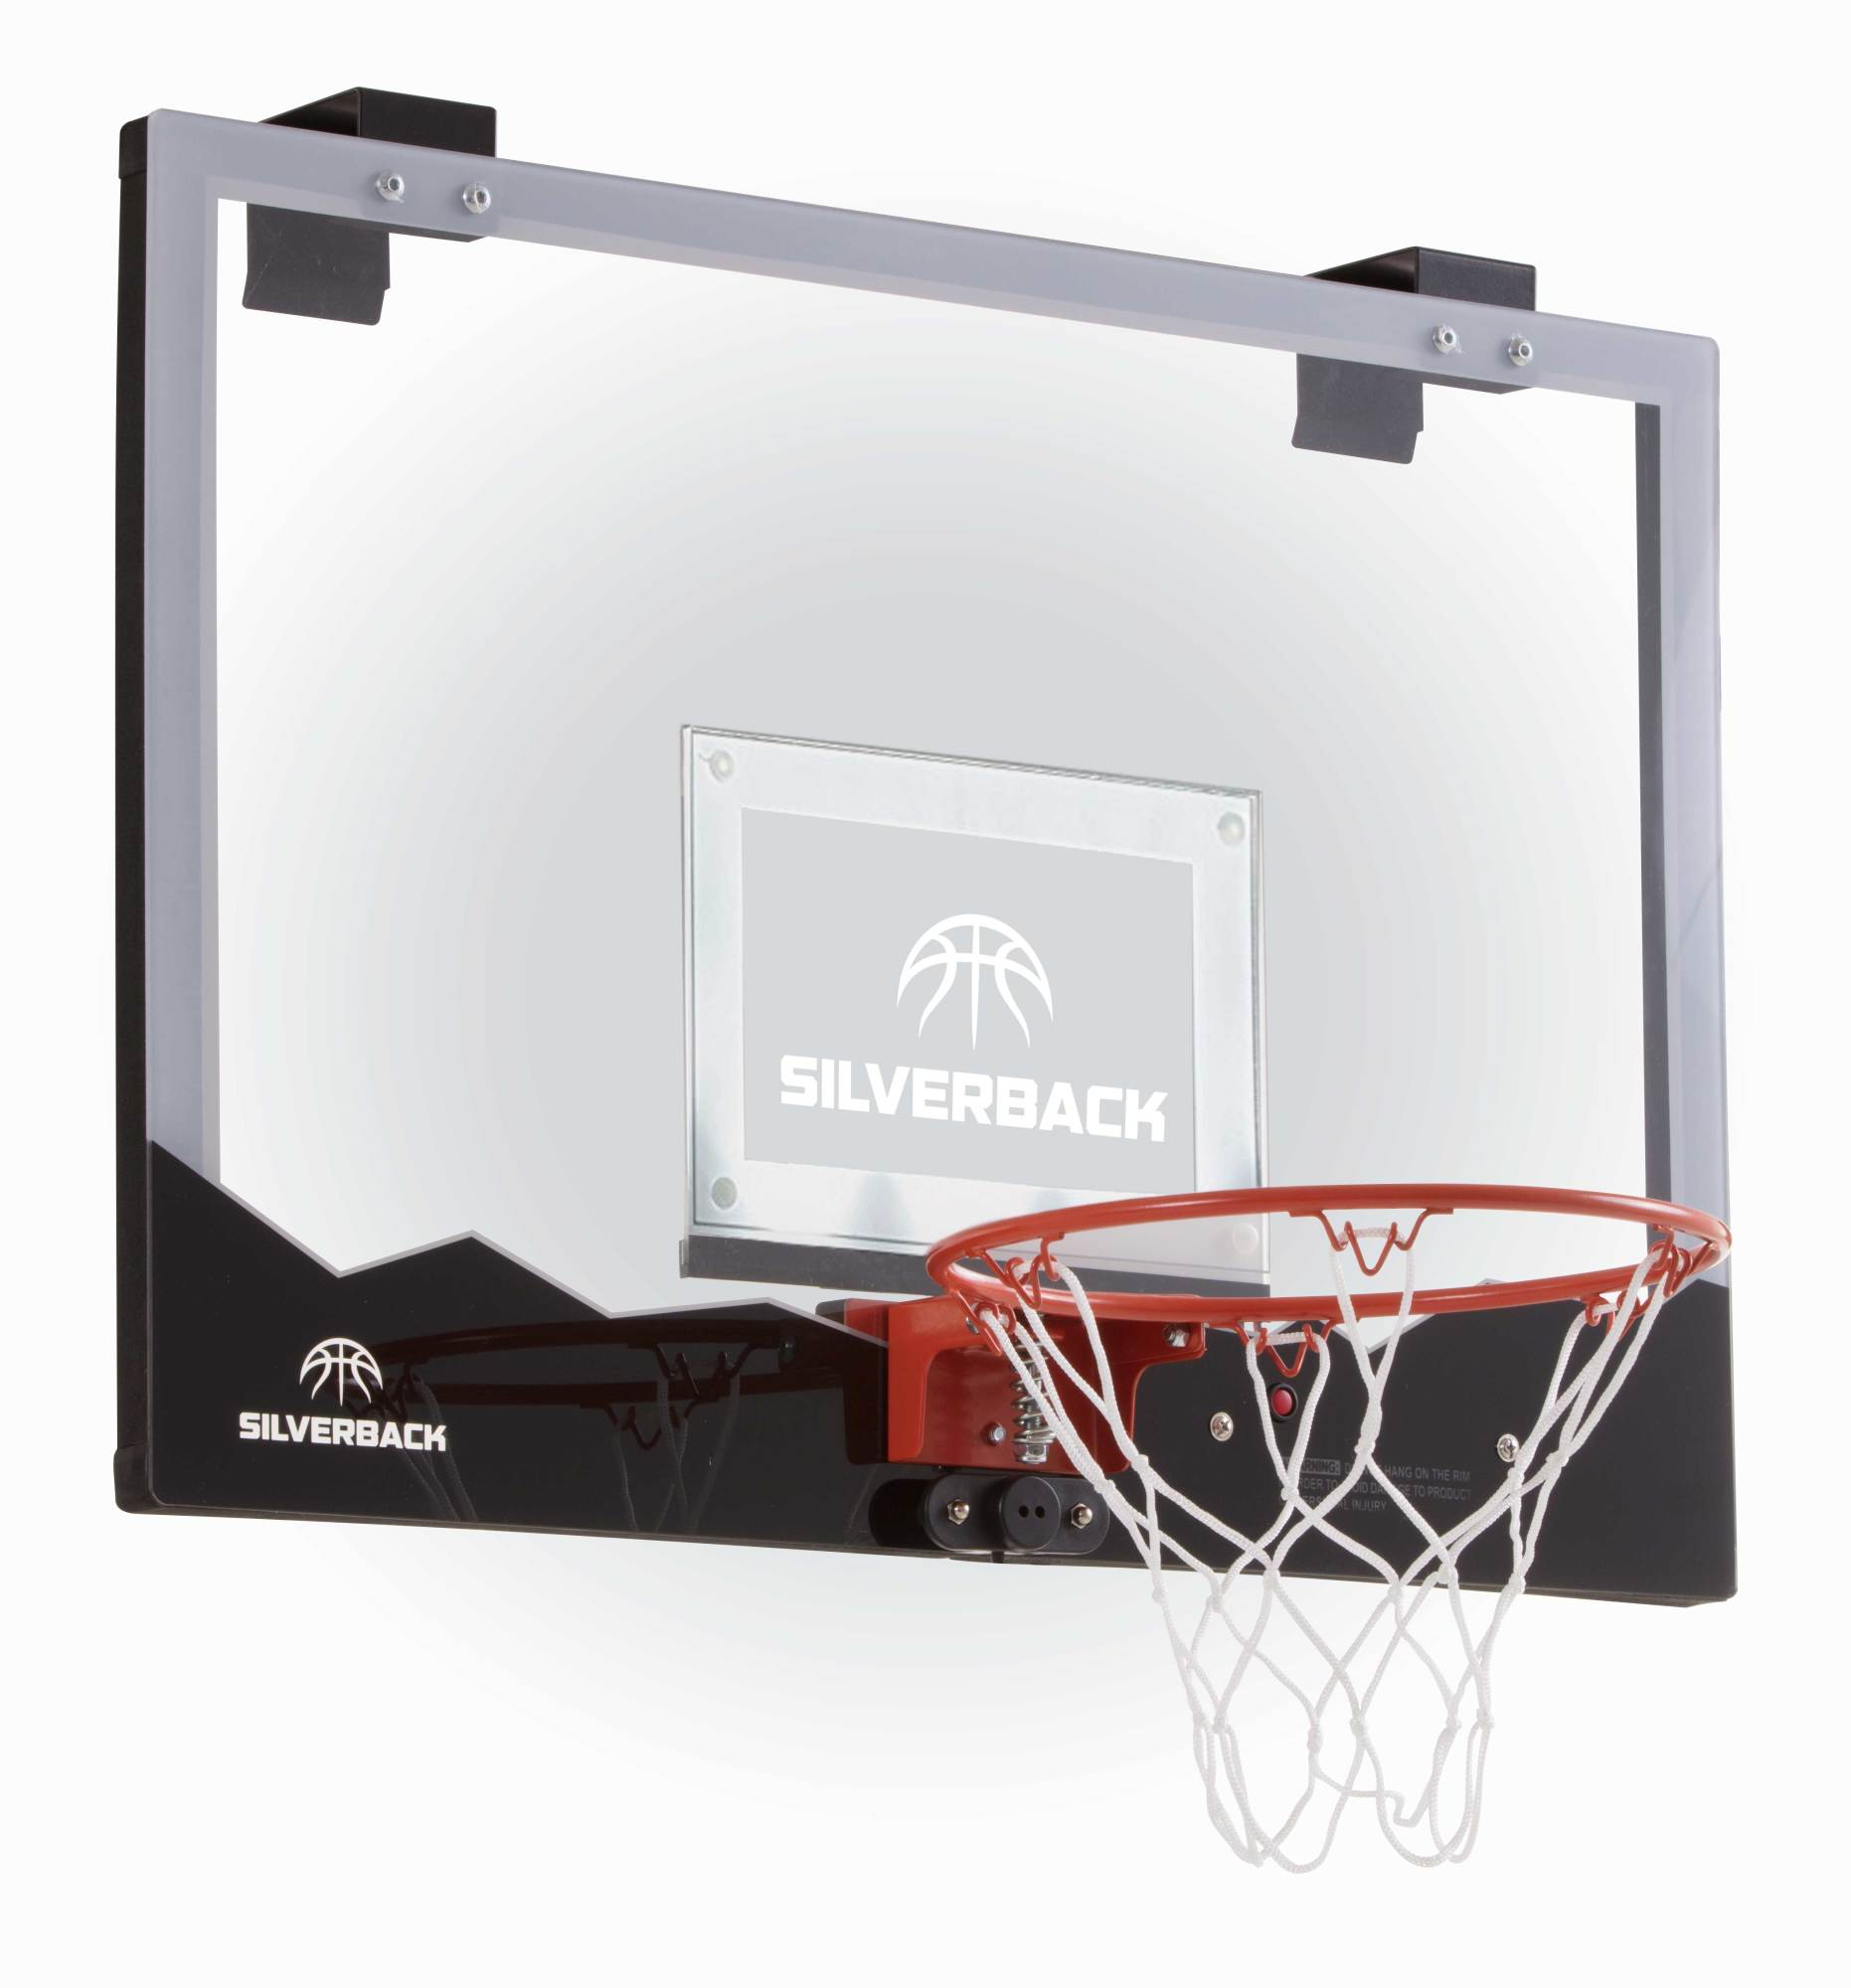 "Silverback 23"" LED Light-Up Over the Door Mini Basketball Hoop Includes Mini Basketball and Air Pump"